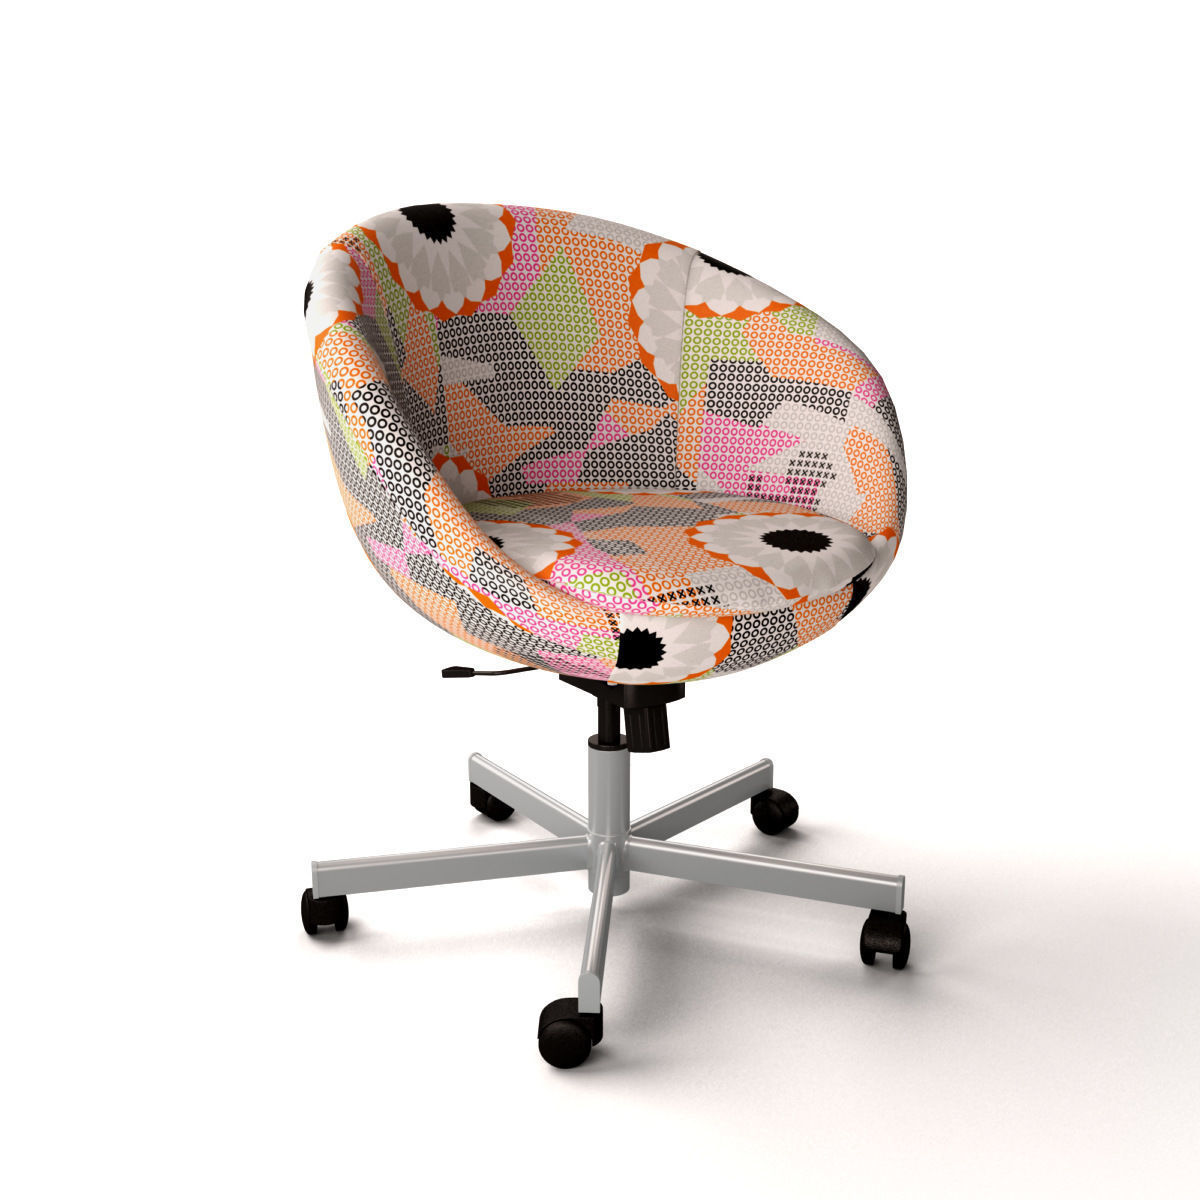 ikea skruvsta swivel chair ankarsvik 3d model max obj 3ds fbx 1 ...  sc 1 st  CGTrader : skruvsta swivel chair - Cheerinfomania.Com